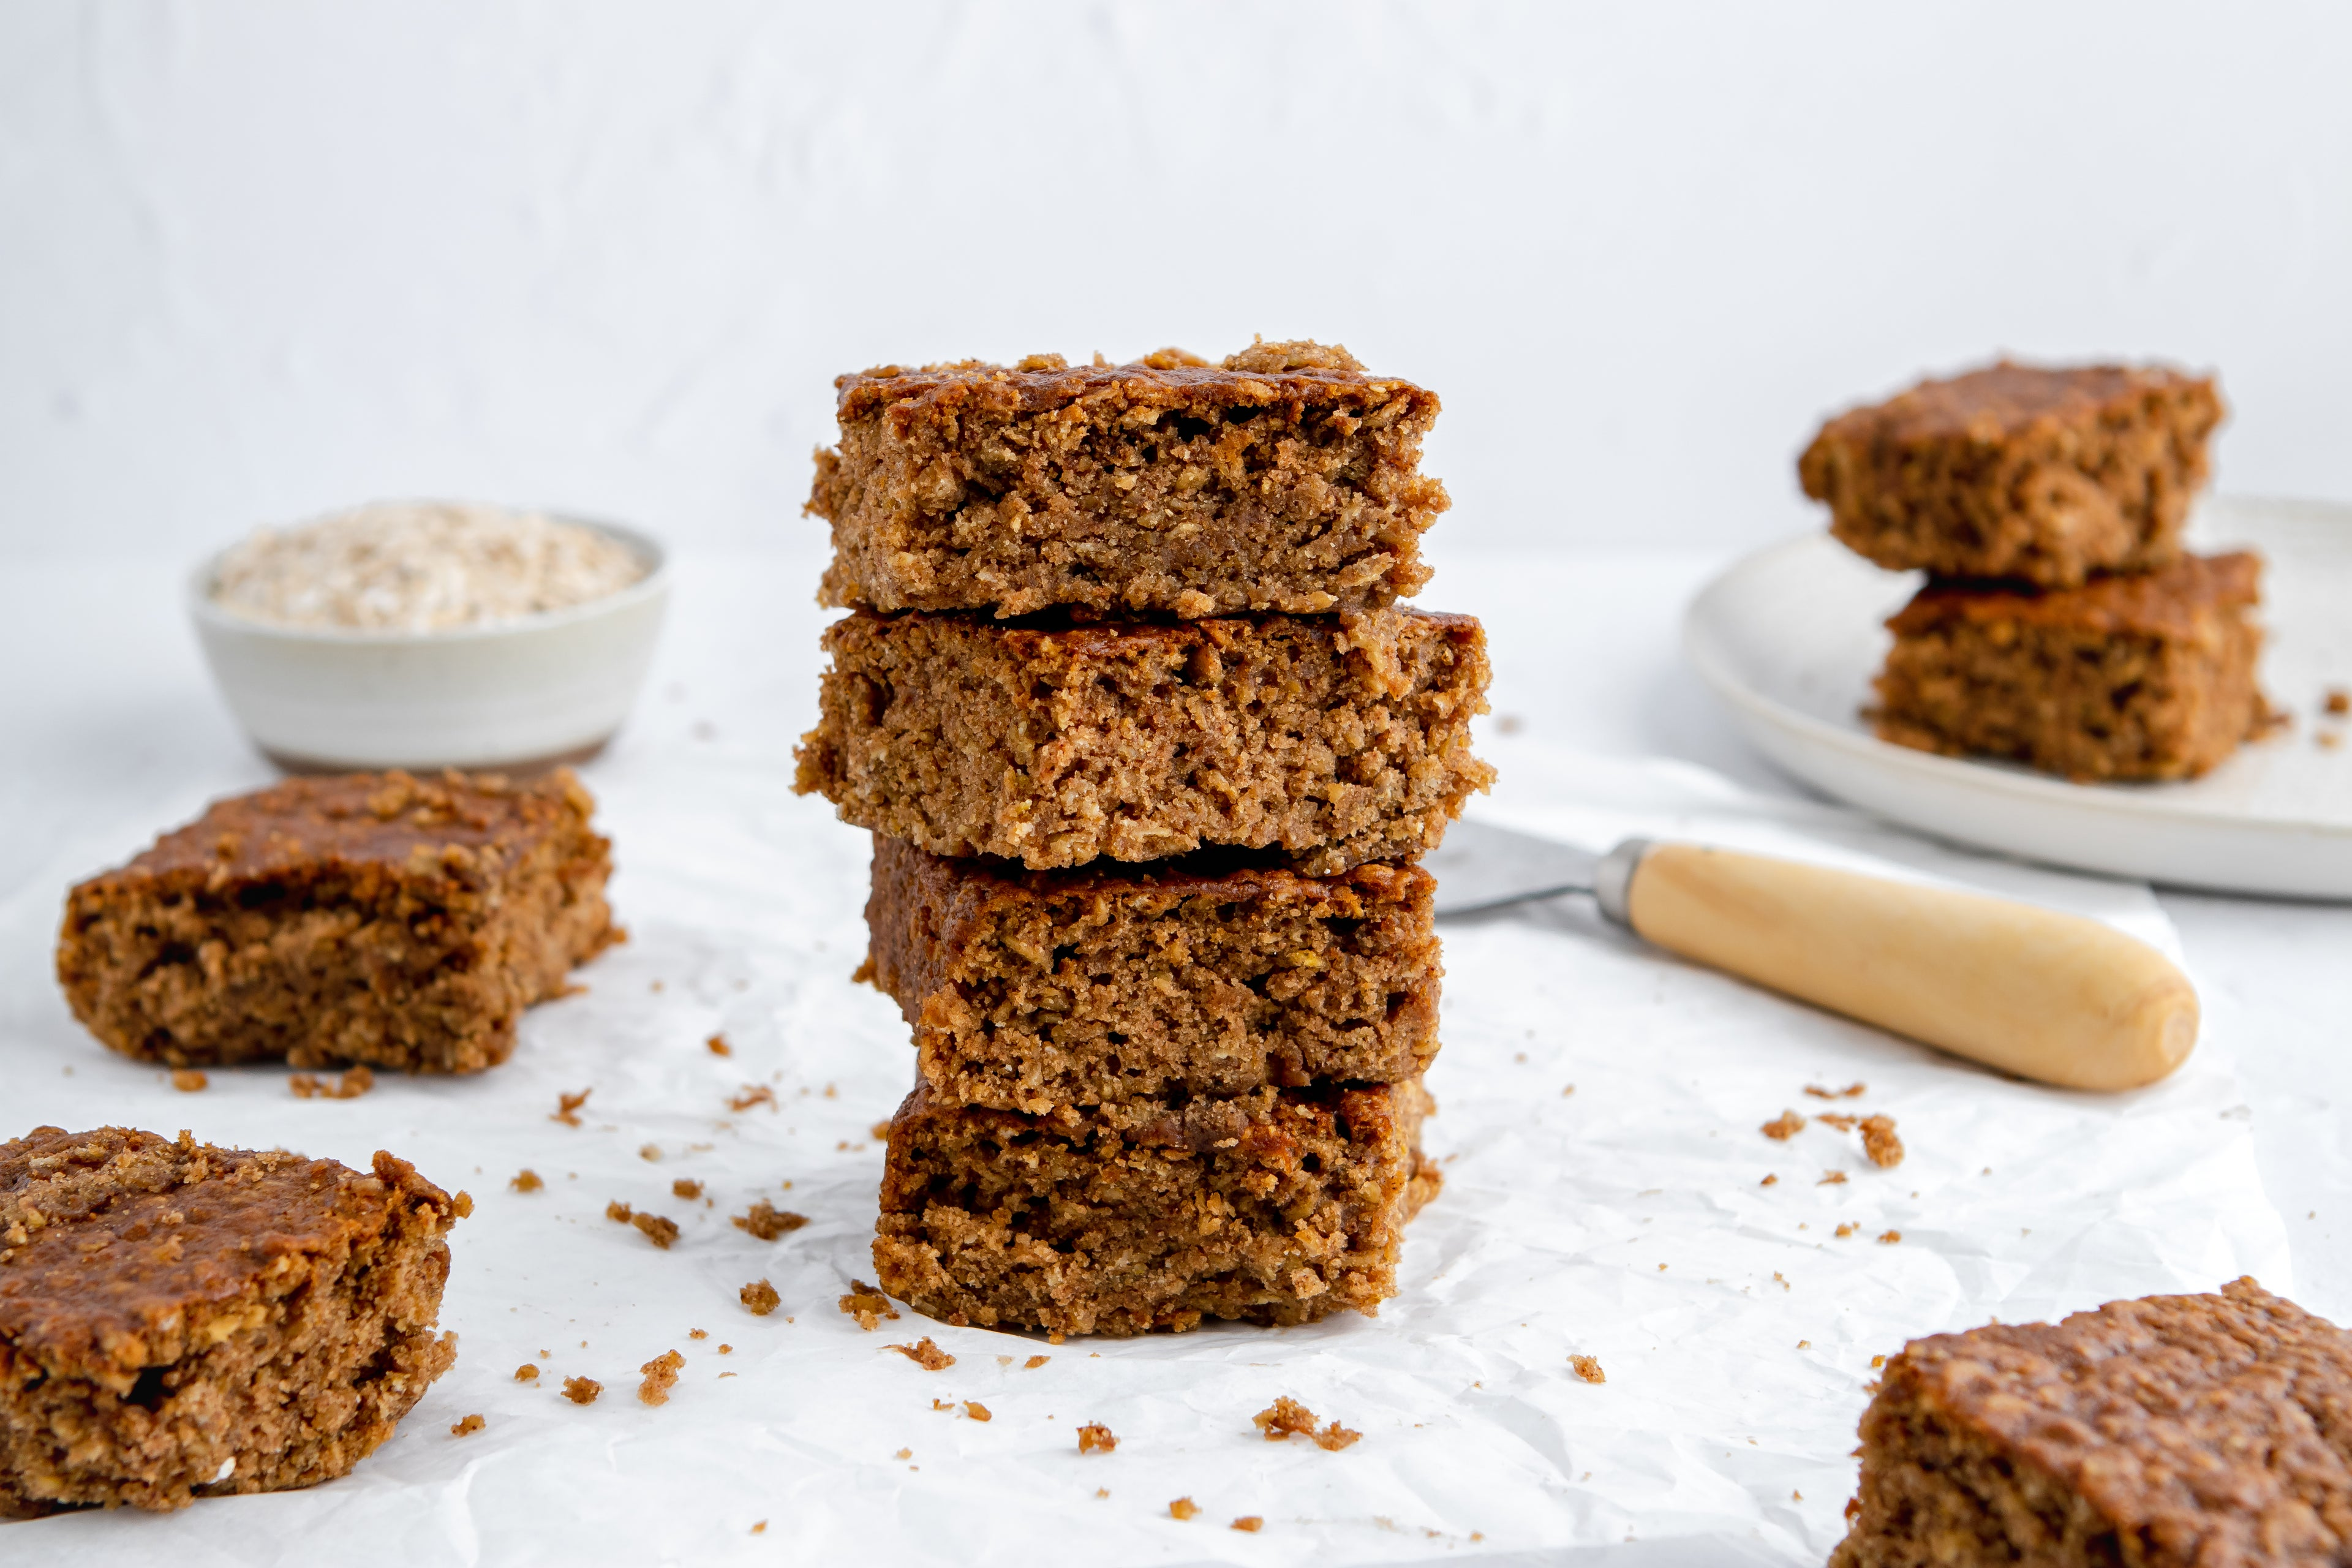 Squares of Sticky Yorkshire Parkin stacked on top of each other, surrounded by crumbs with a bowl of oats in the background